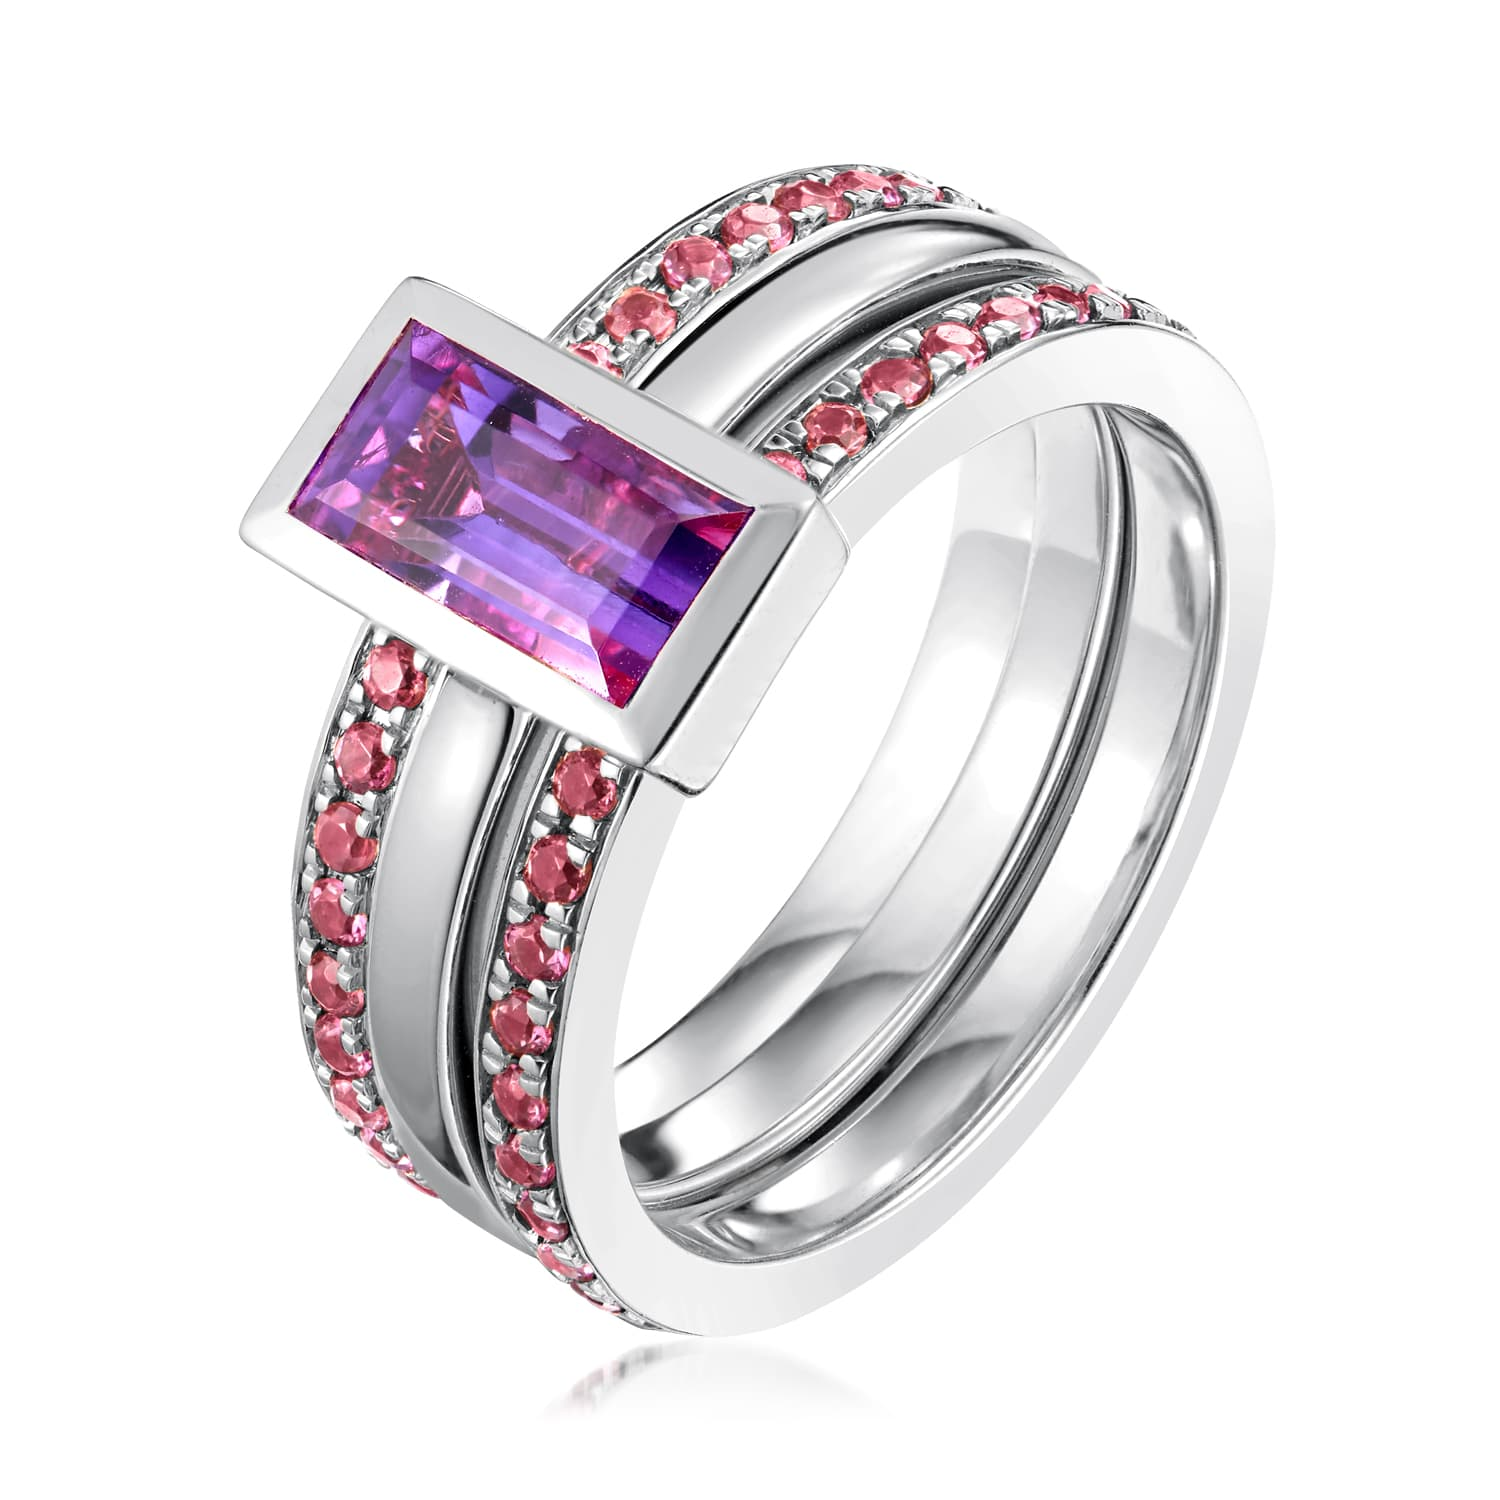 Ornate Amethyst Eternity Ring